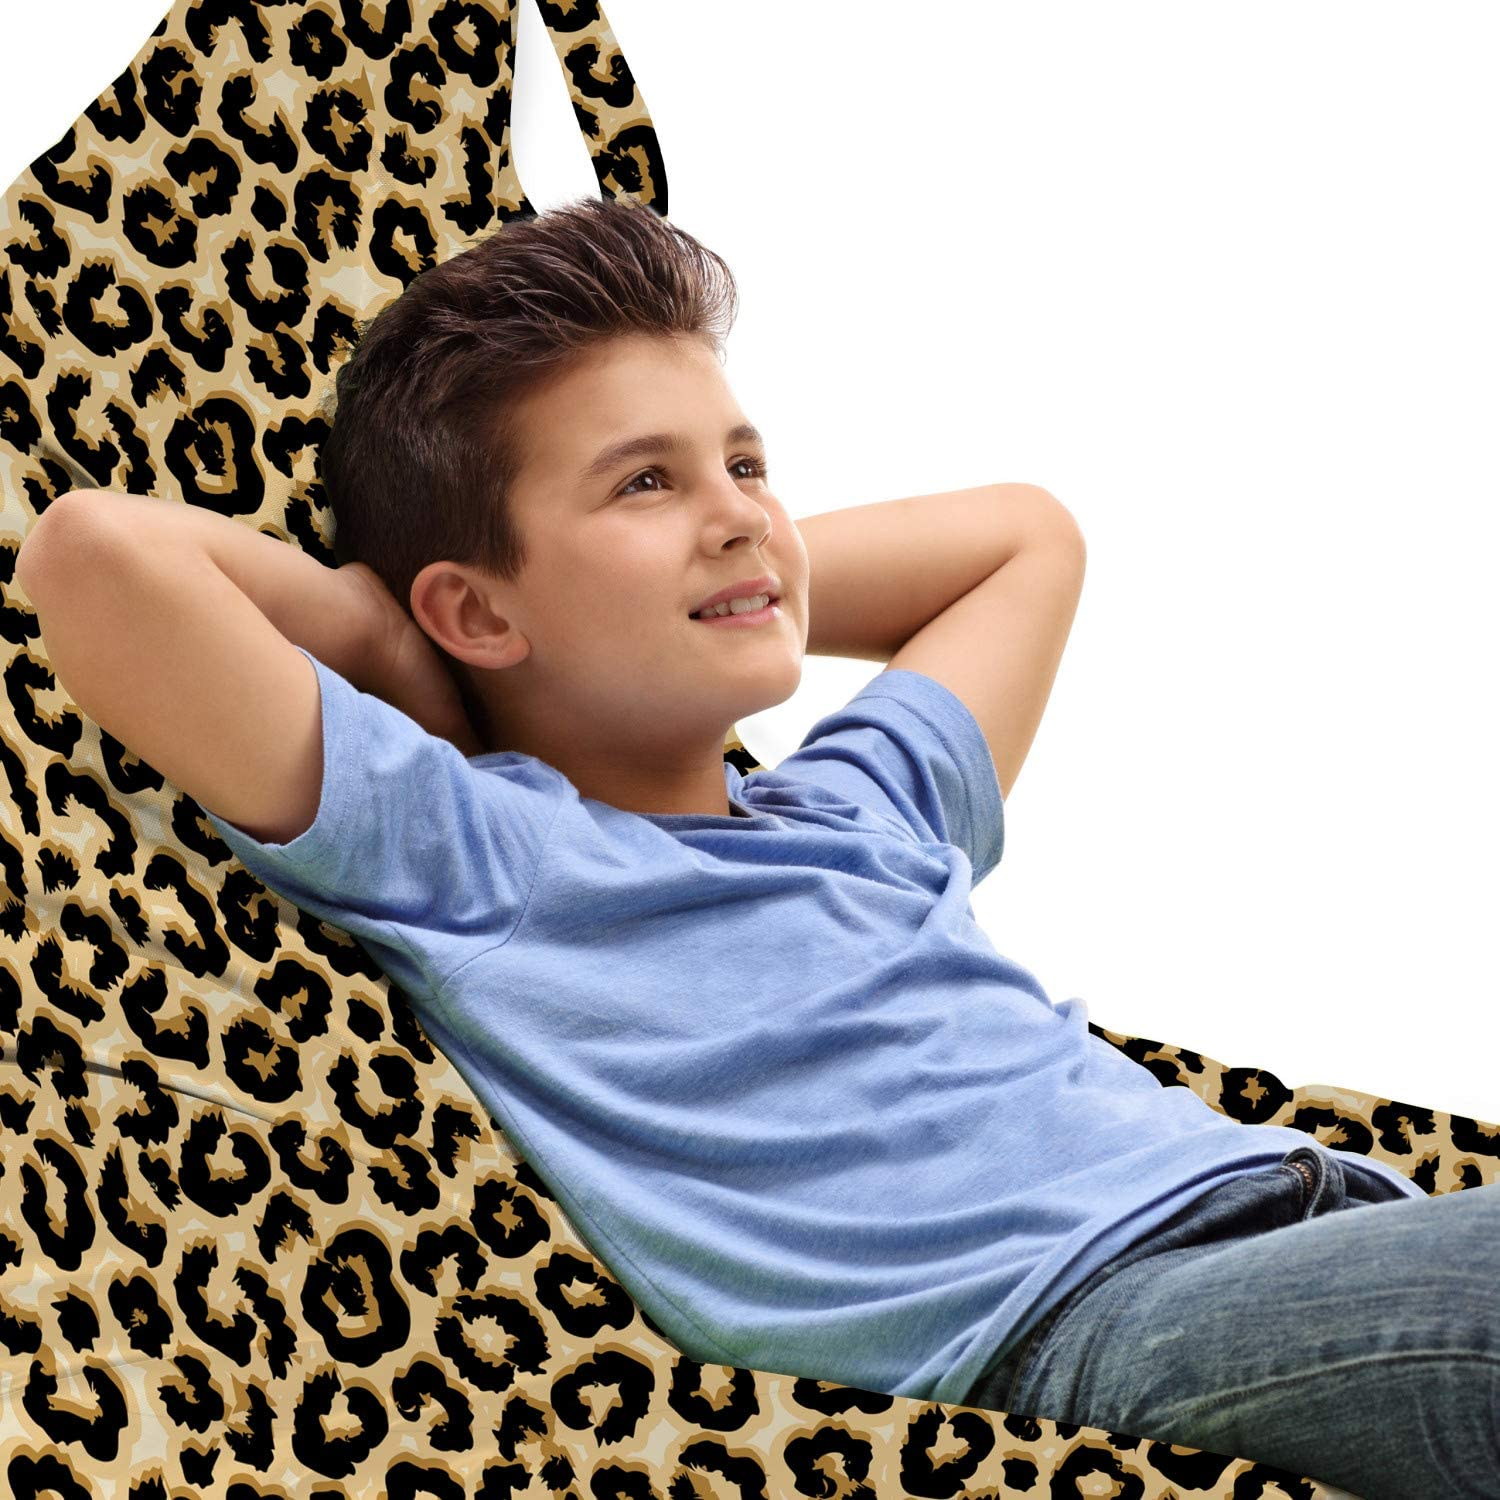 Ambesonne Leopard Inexpensive Lounger Chair Bag Brand Cheap Sale Venue Continuing Skin Animal Insp